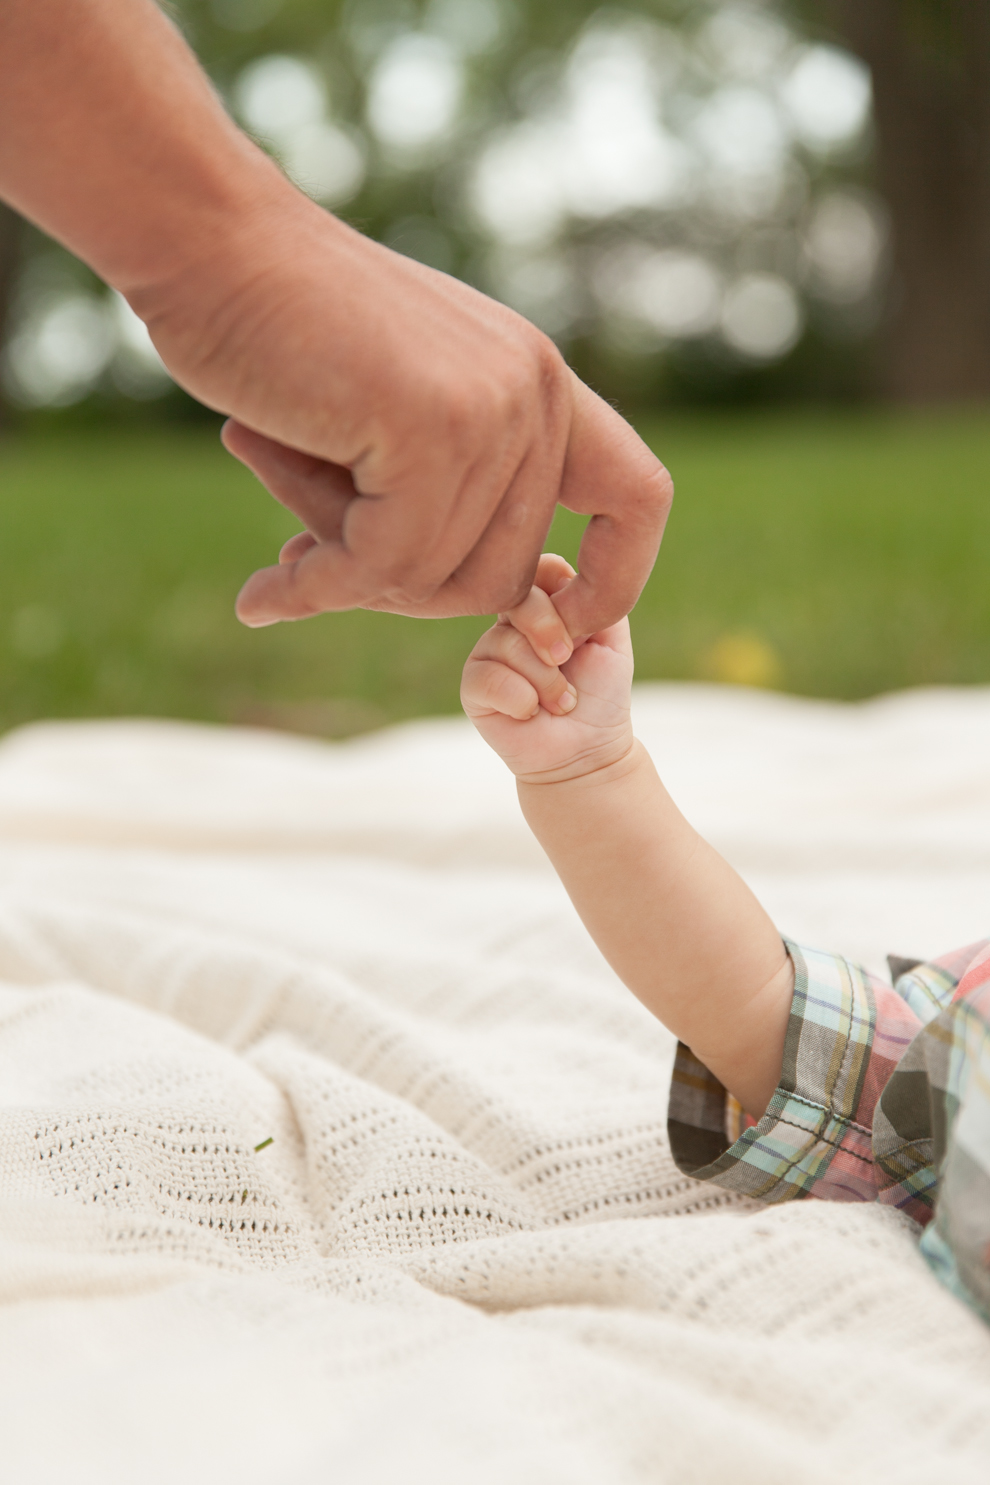 072614_Lodin_Family_3mth_025